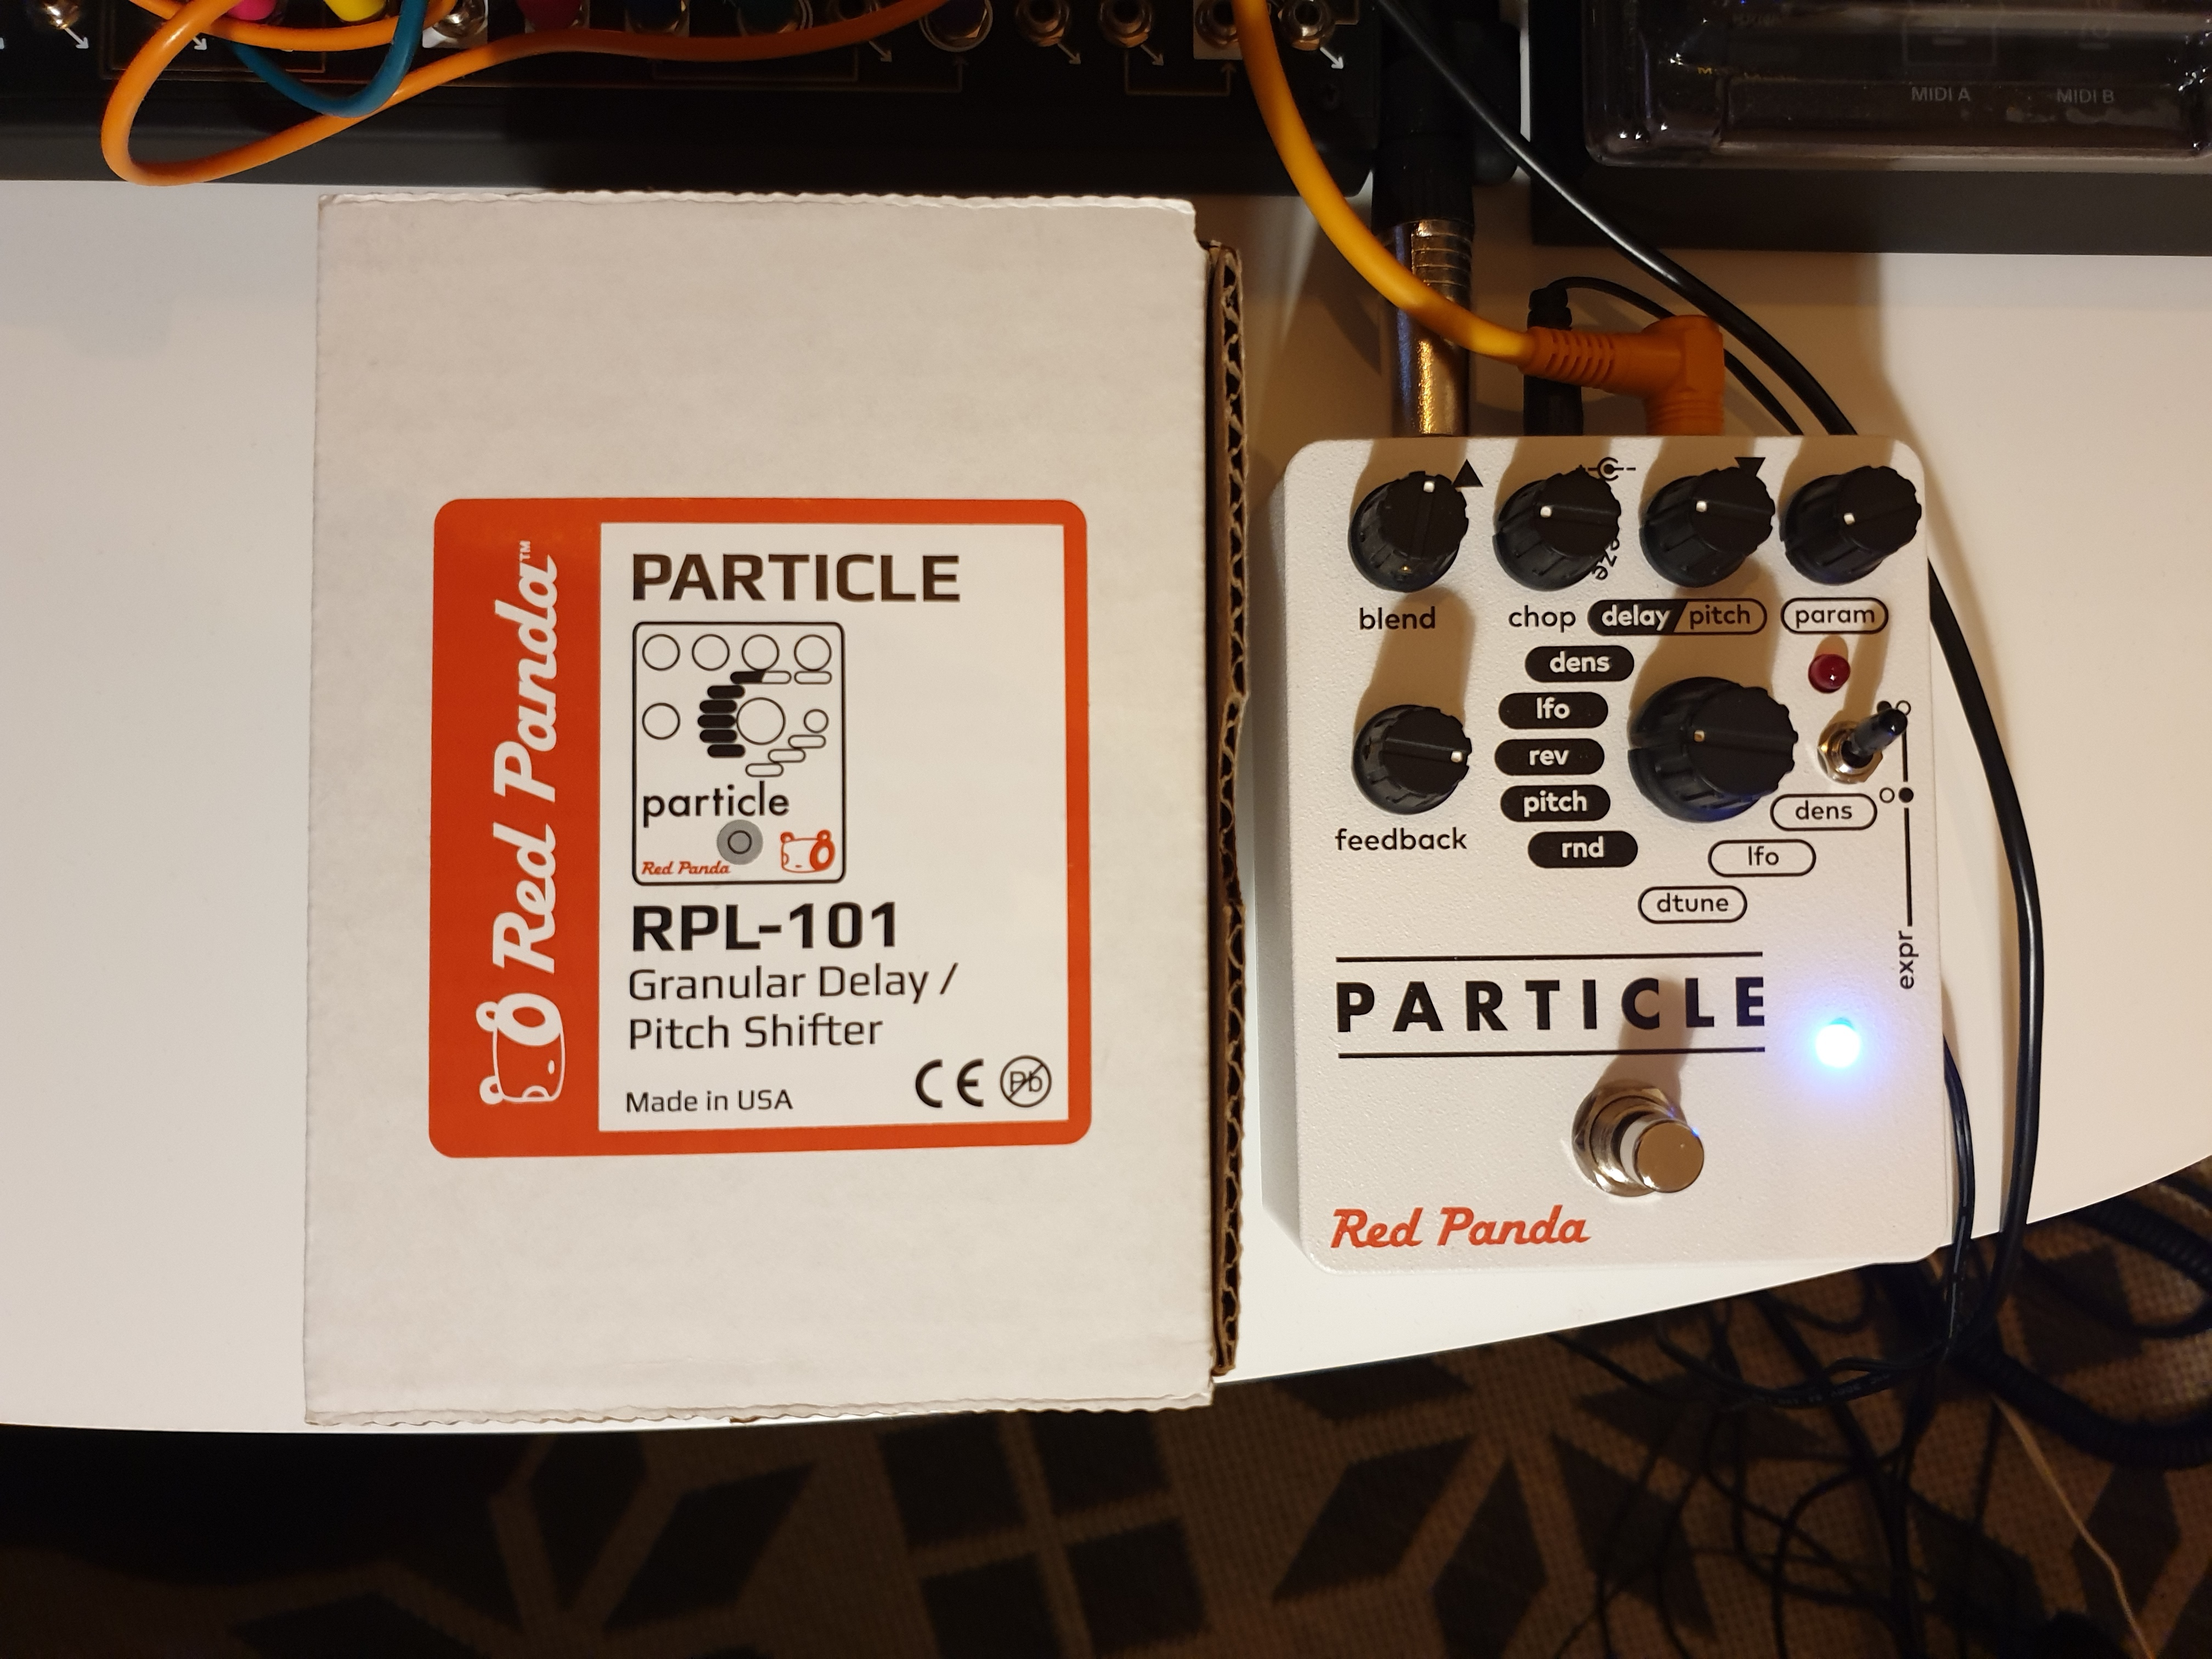 Particle granular delay pitch shifter t